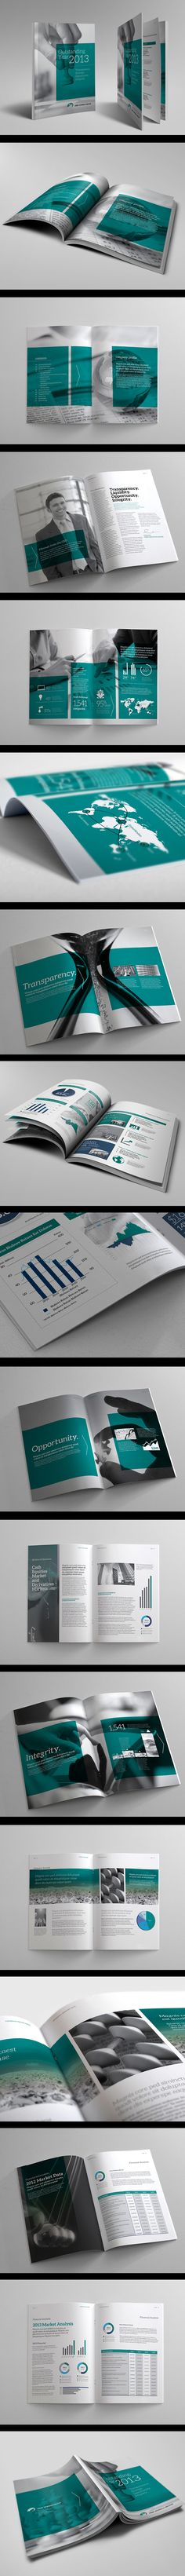 Corporate Annual Report Vol.4 on Behance